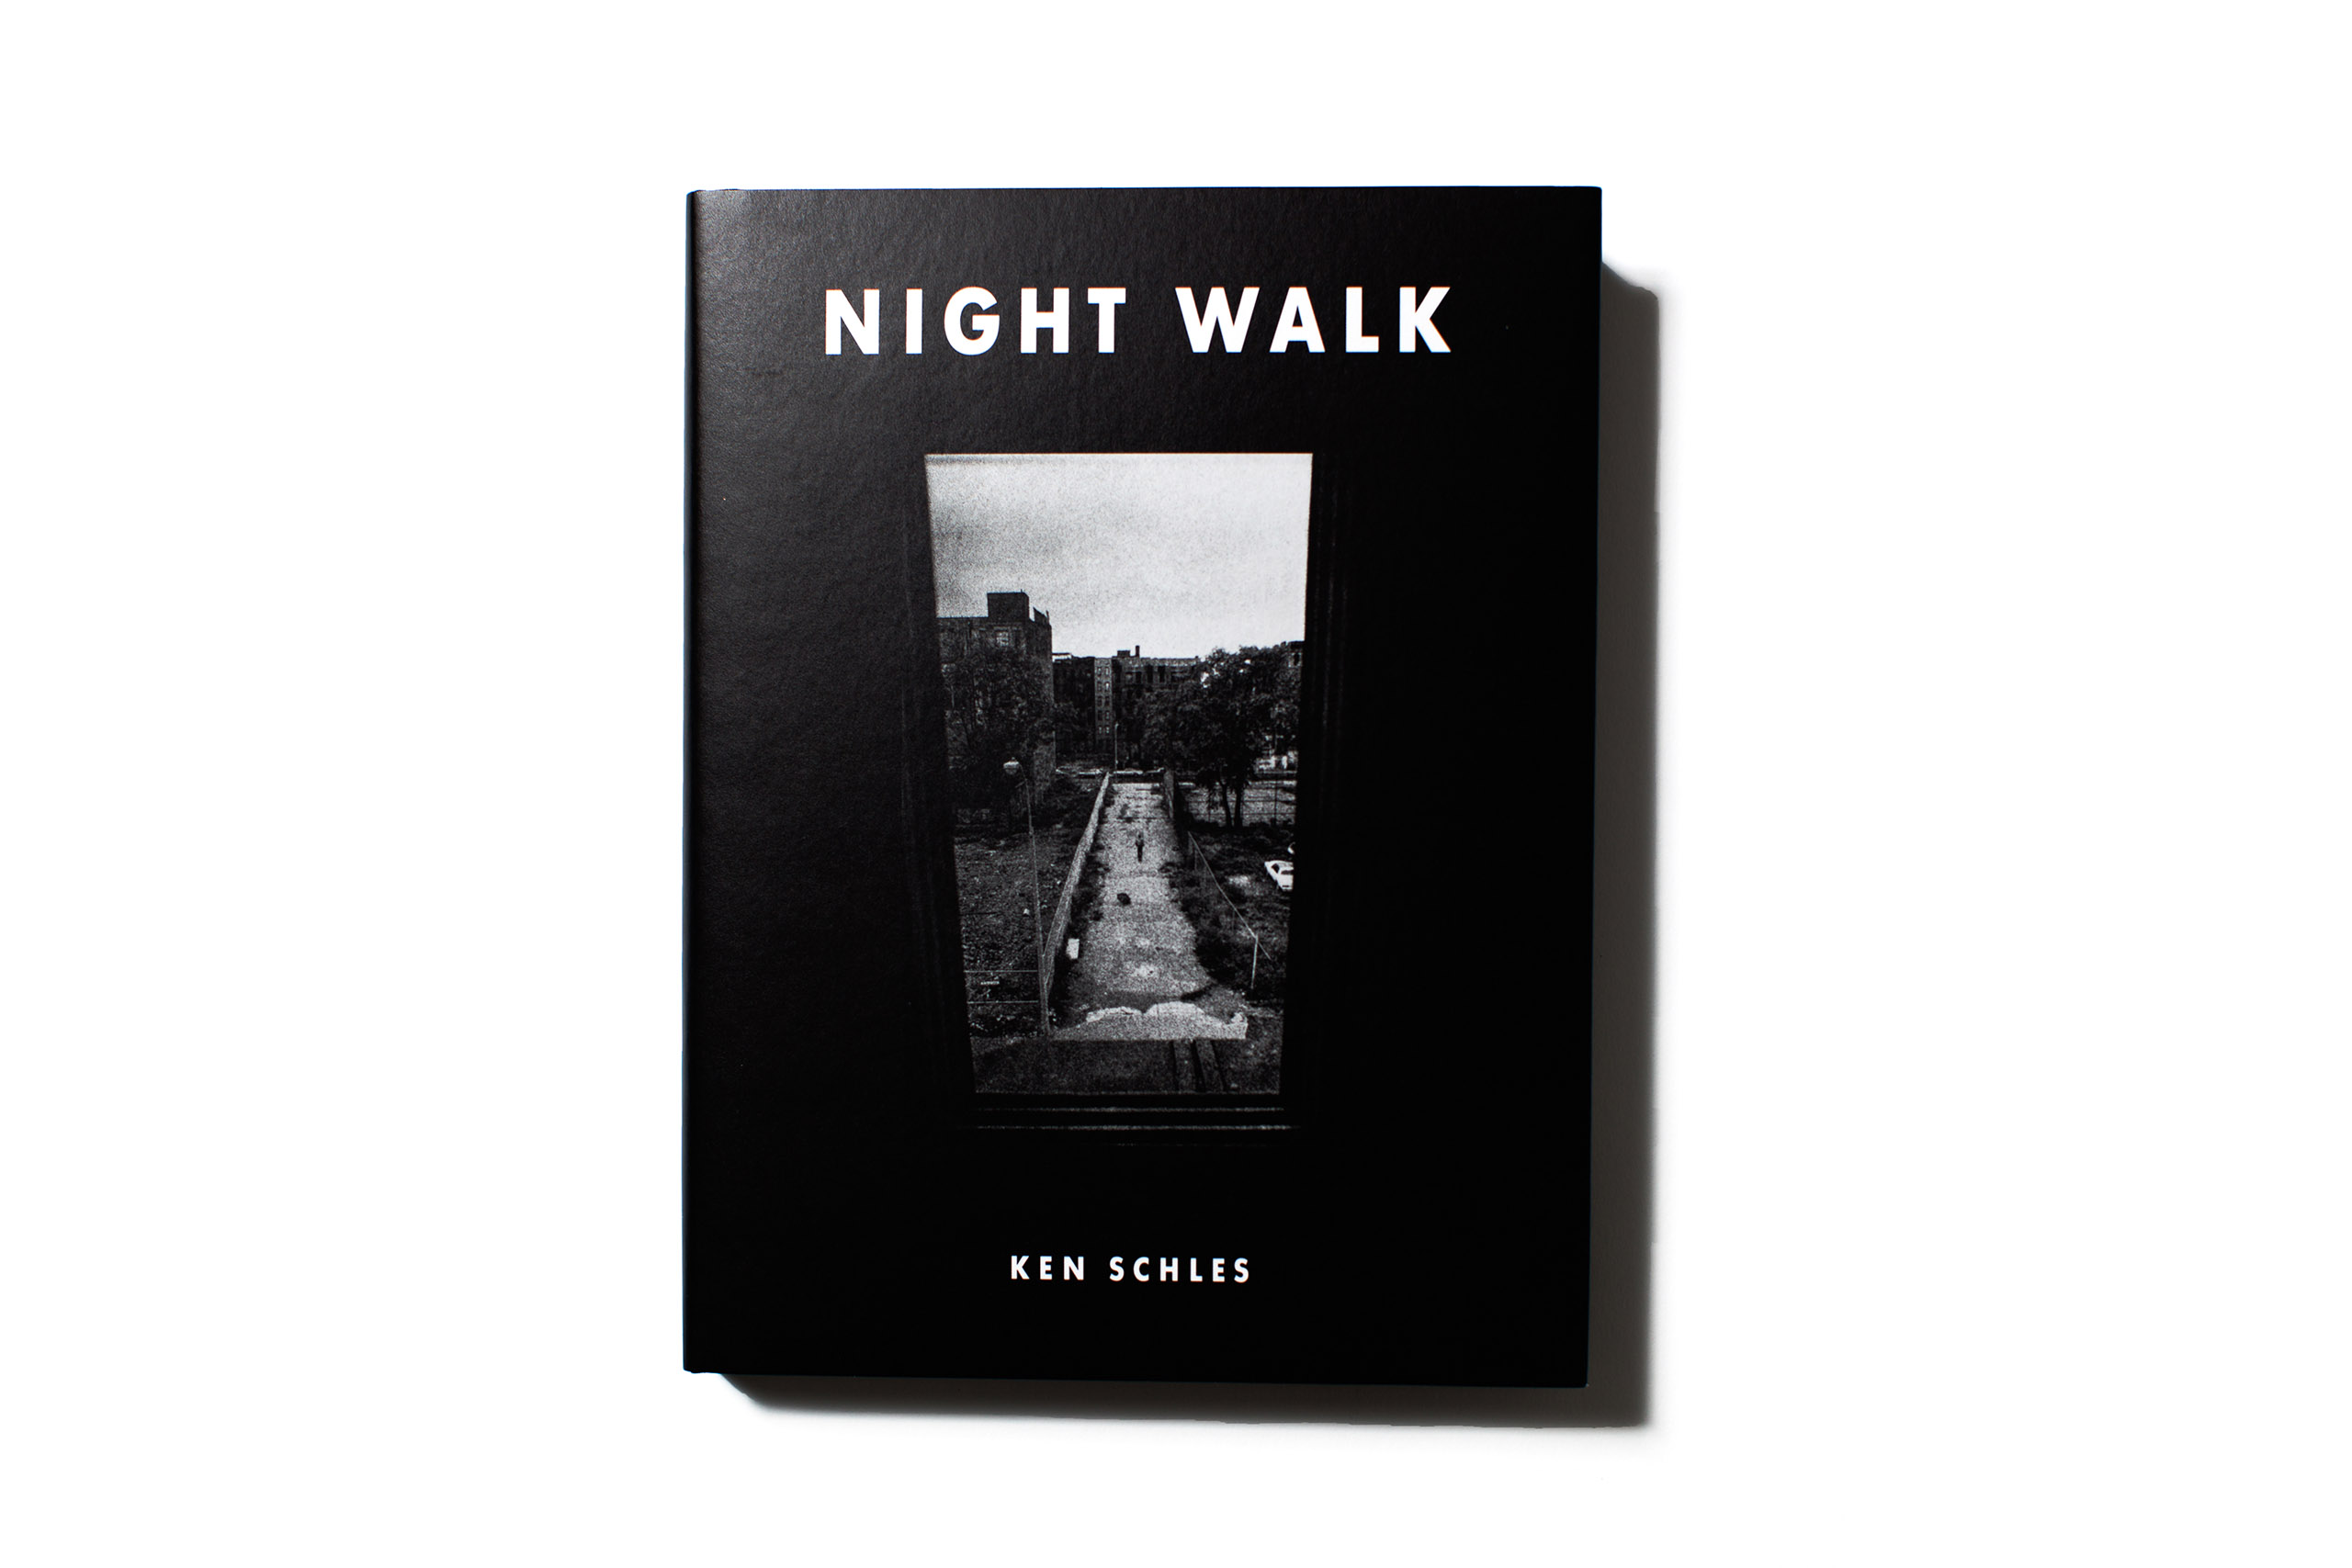 Night Walk  by Ken Schles, published by Steidl, selected by Jason Eskenazi, photographer and author of By the Glow of the Jukebox: The Americans List.